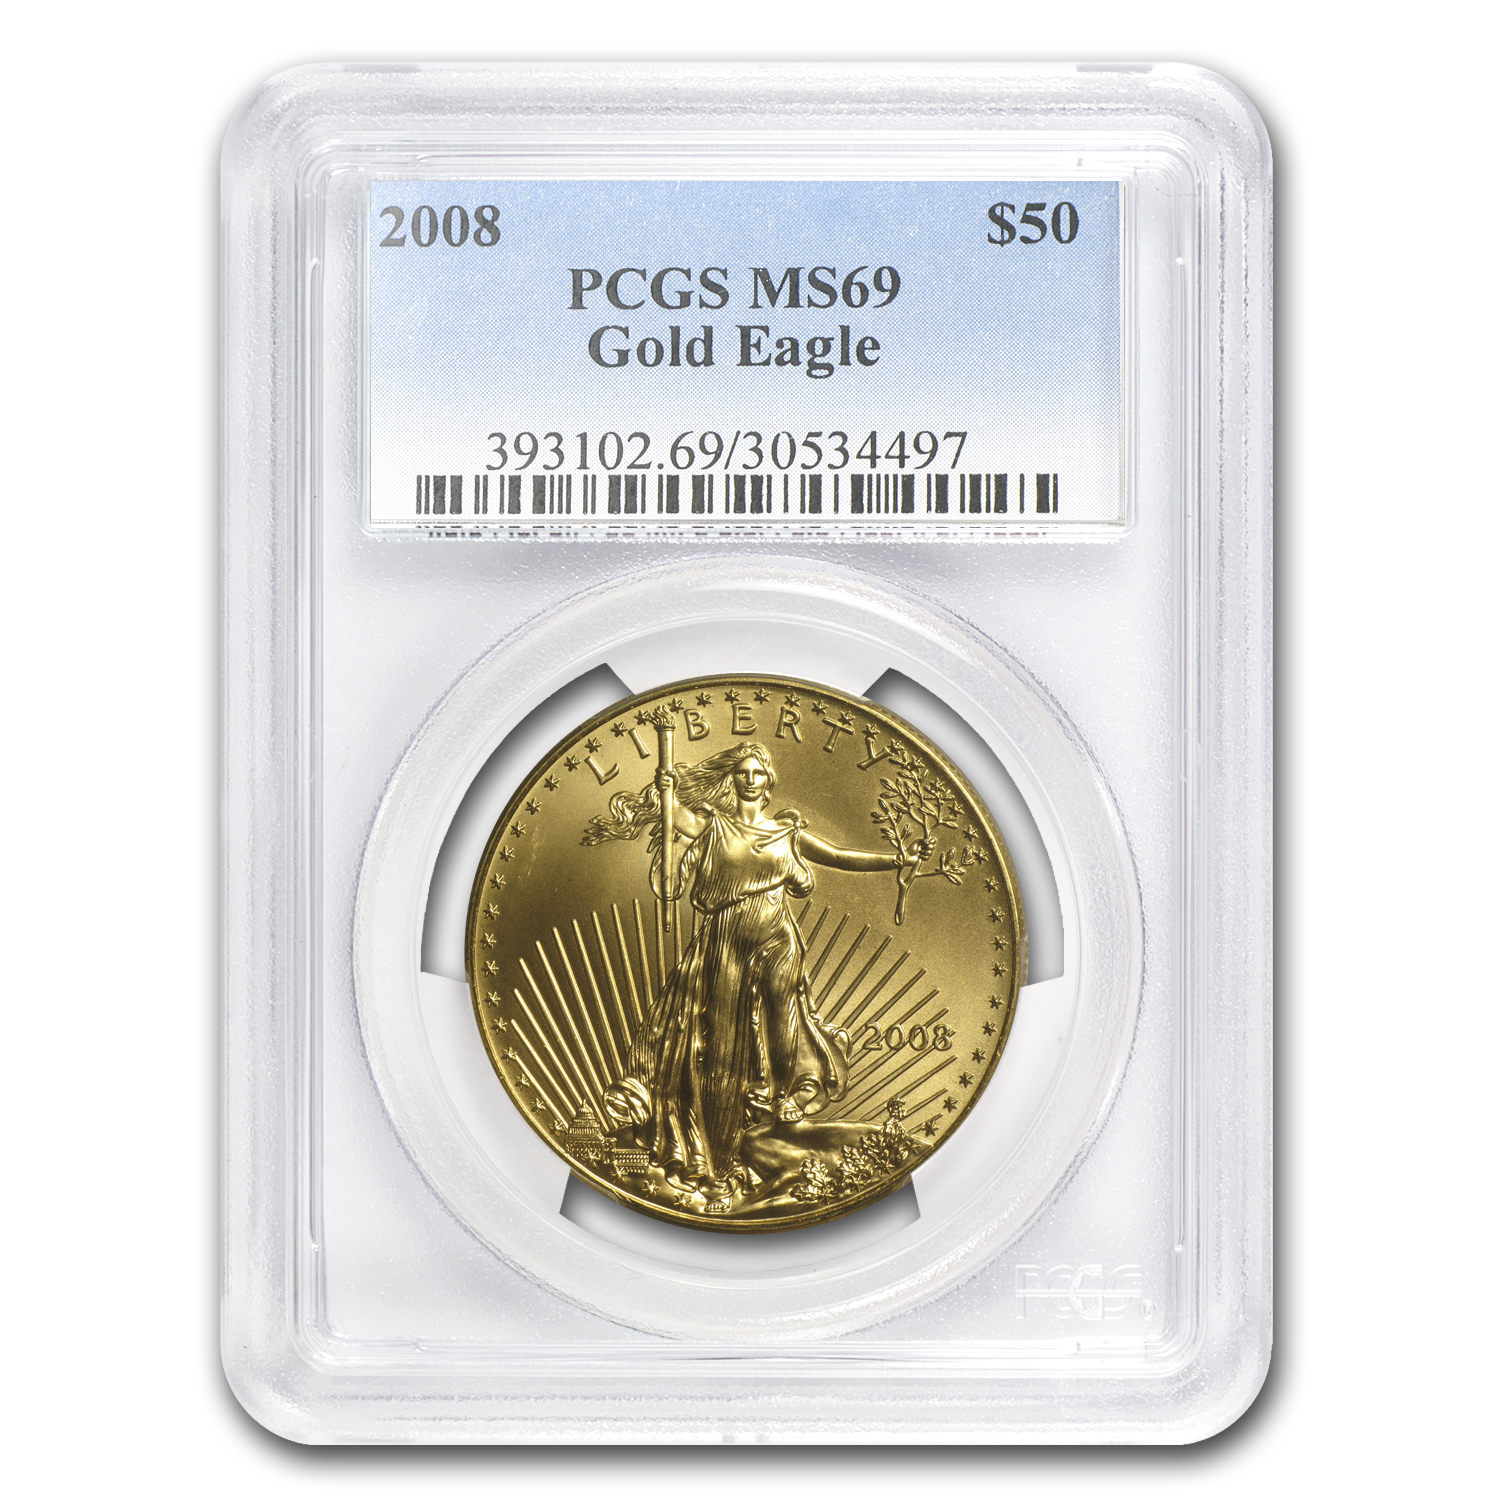 2008 1 oz Gold American Eagle MS-69 PCGS